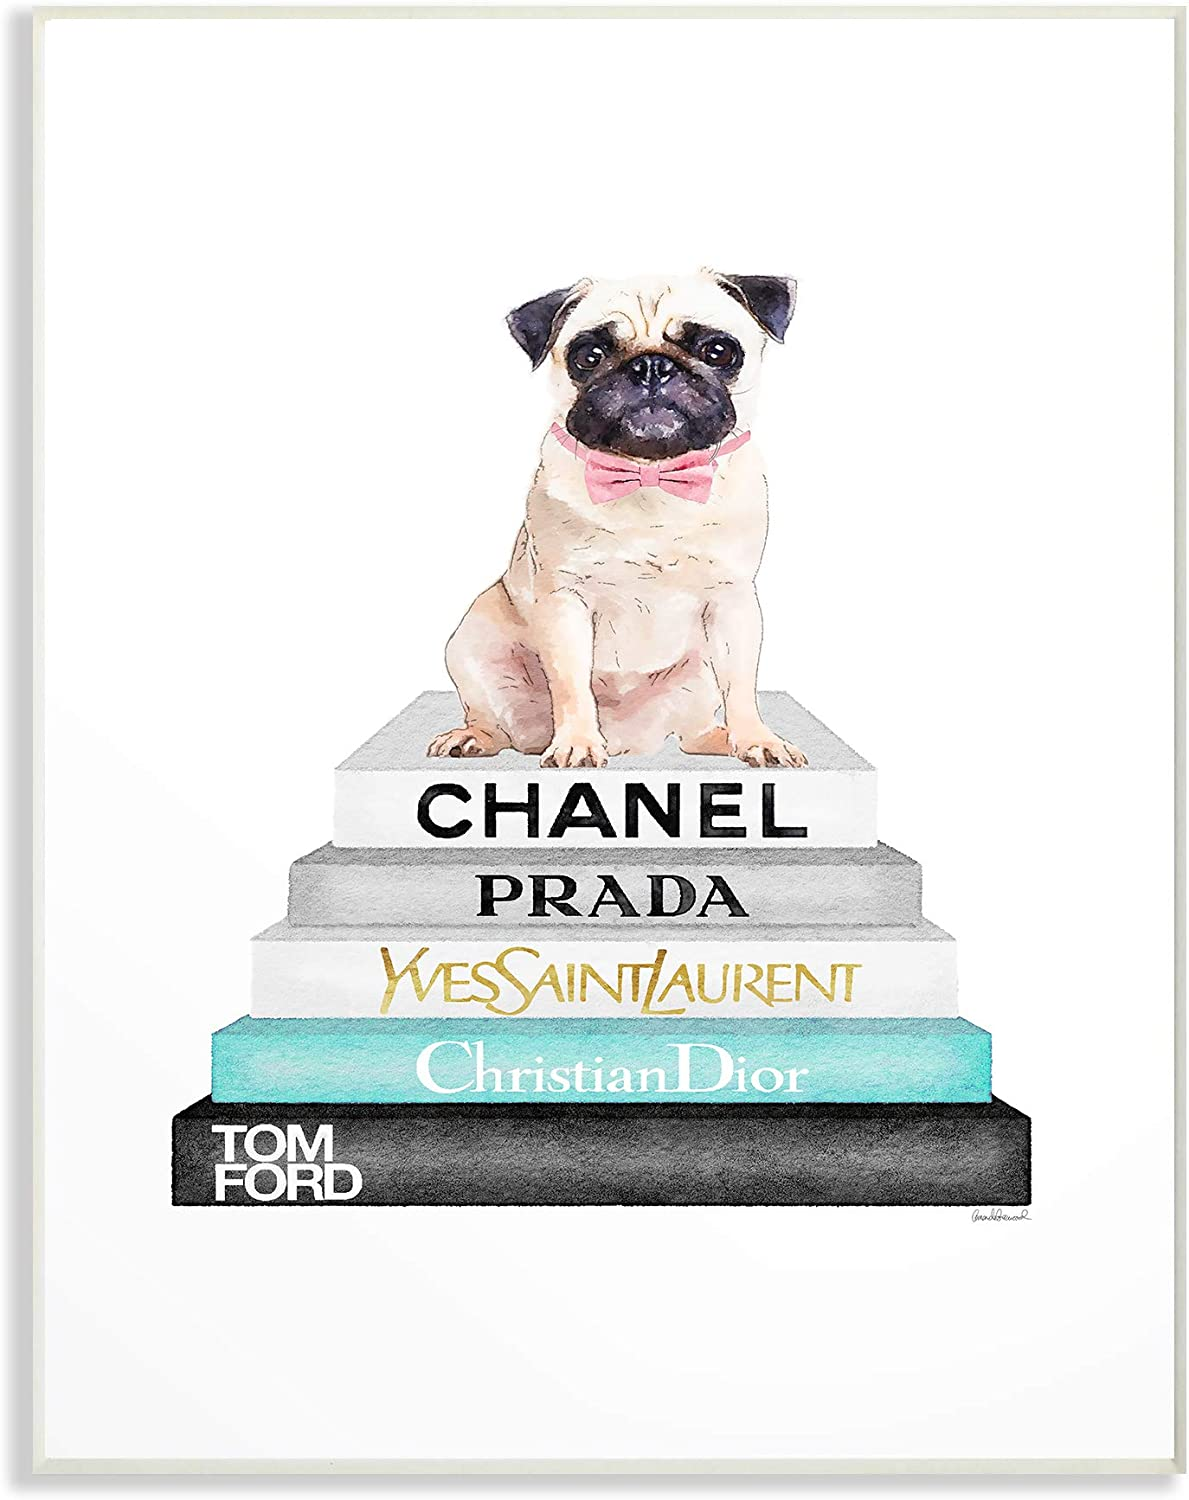 The Stupell Home Decor Grey Teal and Black Fashion Bookstack with Pug Wall Plaque Art, Multi-color